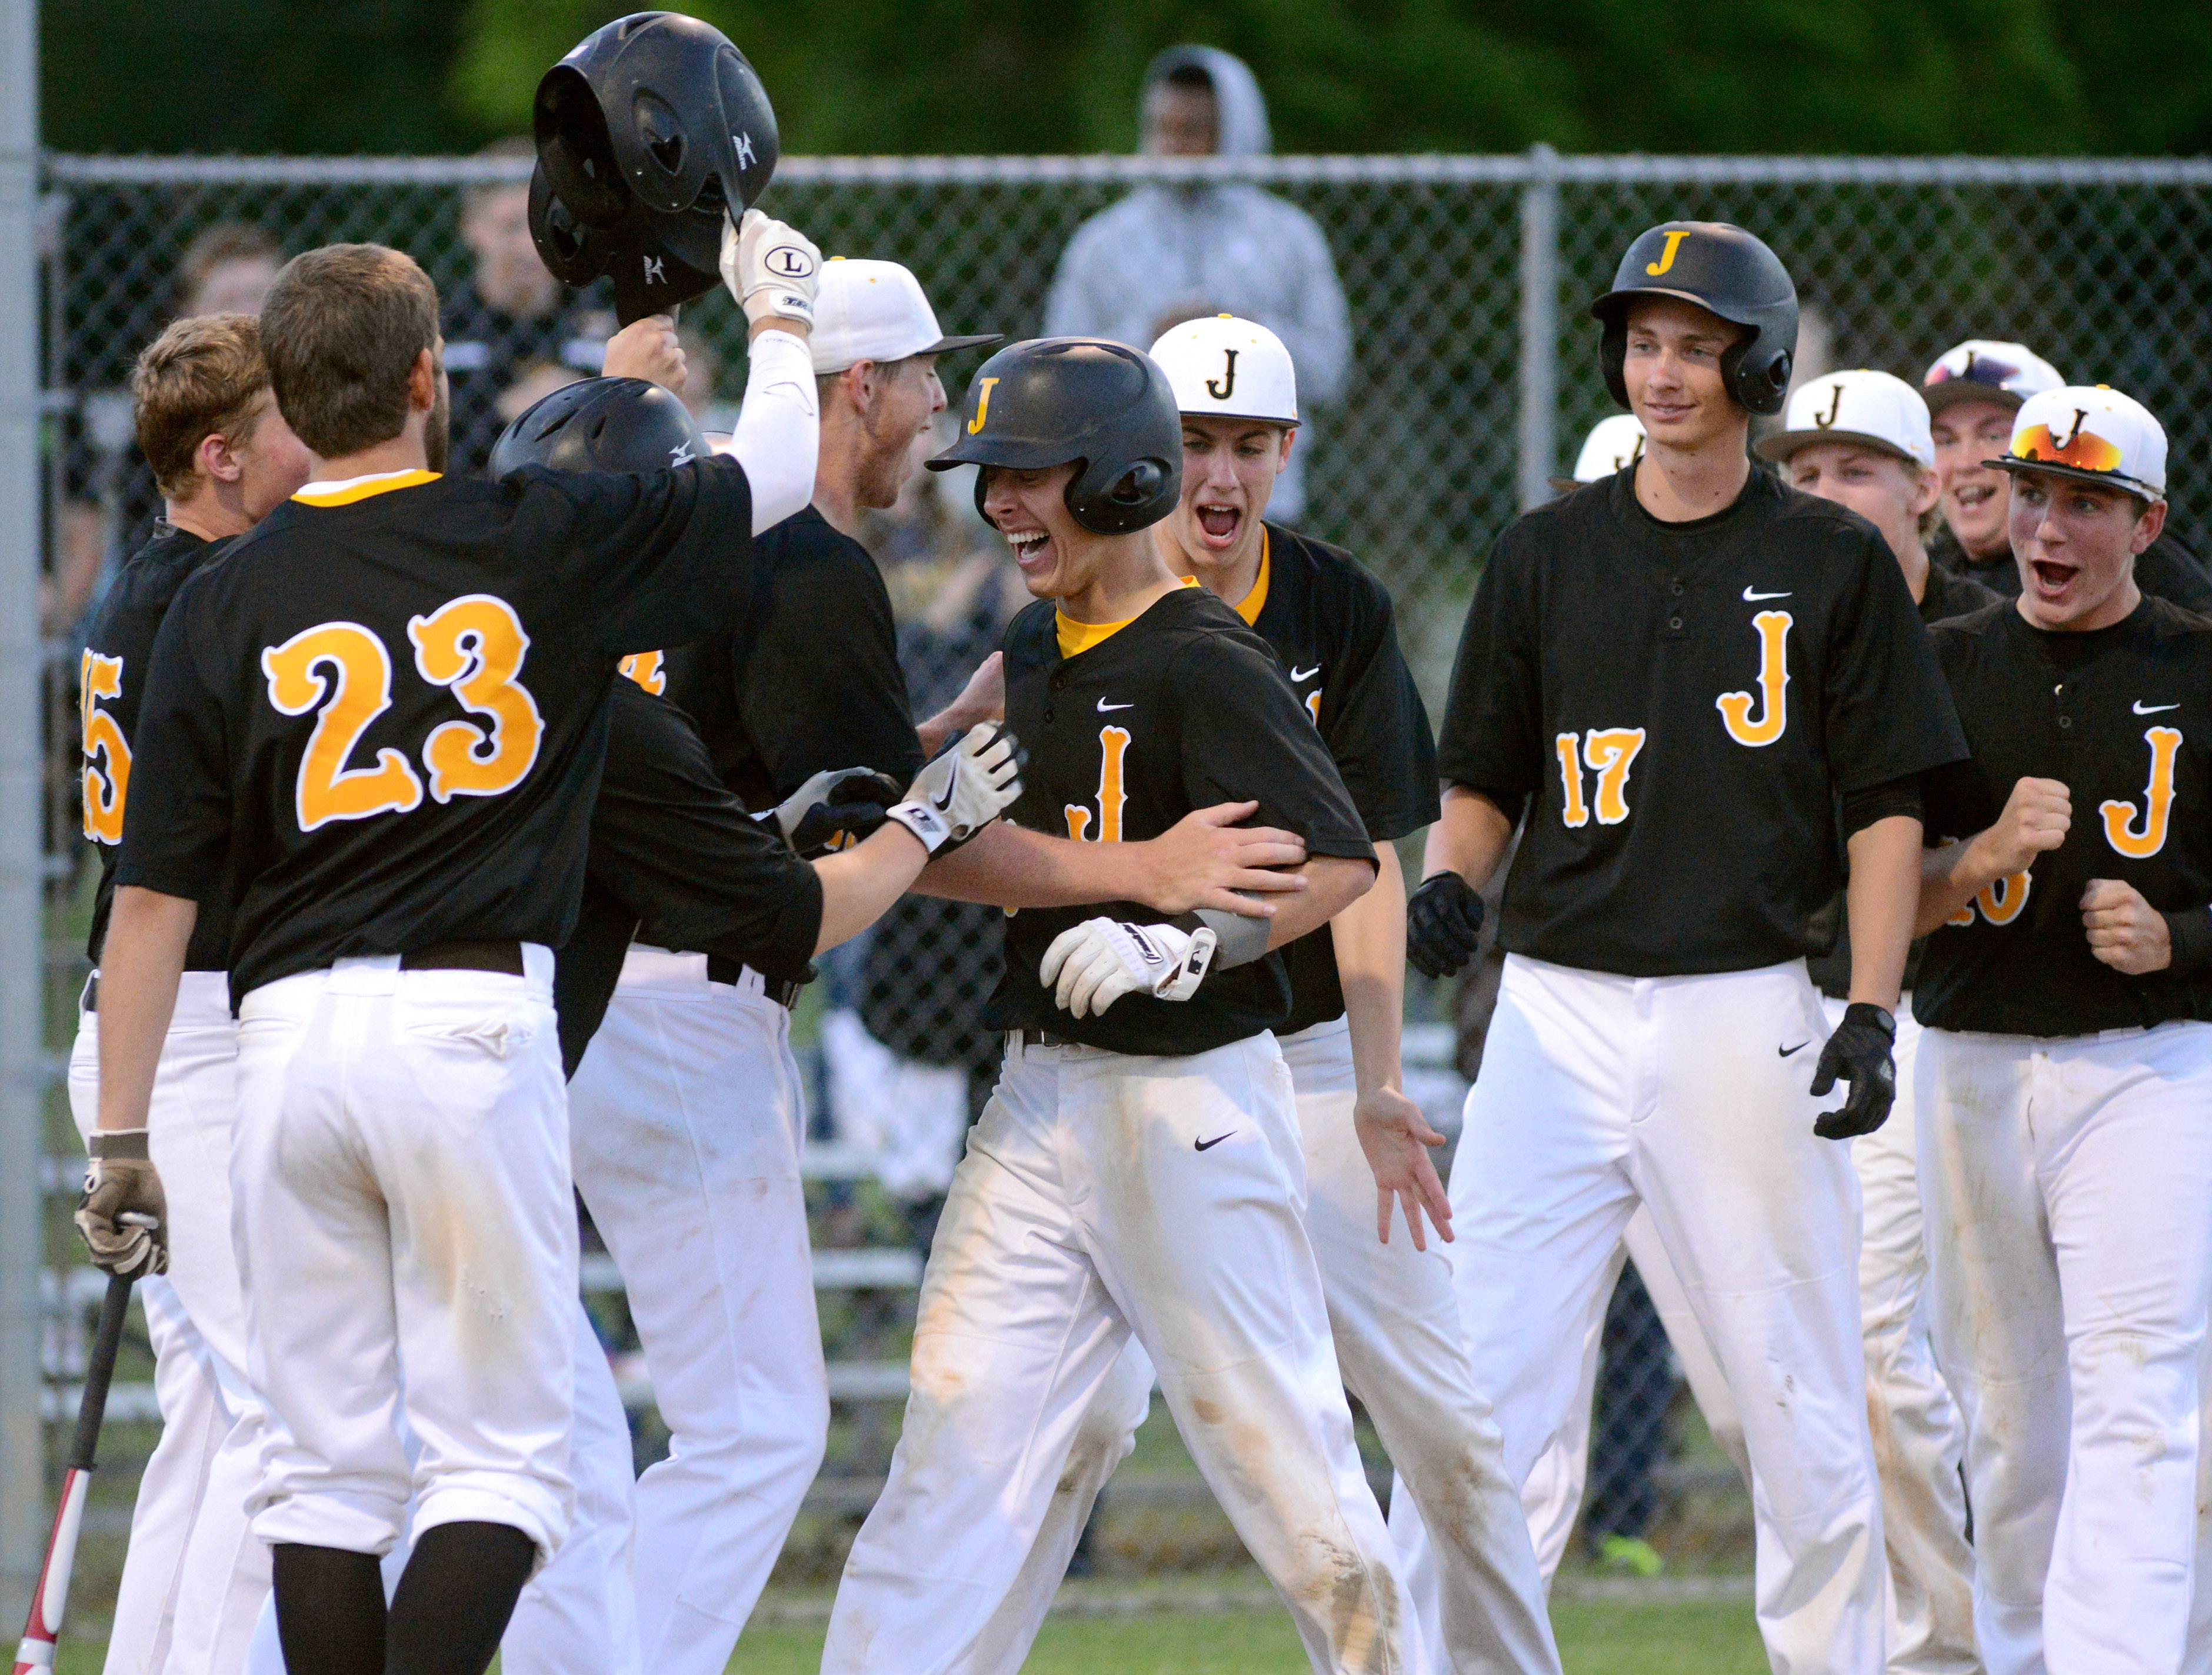 Jacobs' Matt Kozlak, center, is greeted by teammates at home plate after hitting a home run in the fifth inning vs. Hononegah in the Class 4A McHenry sectional semifinal on Wednesday.